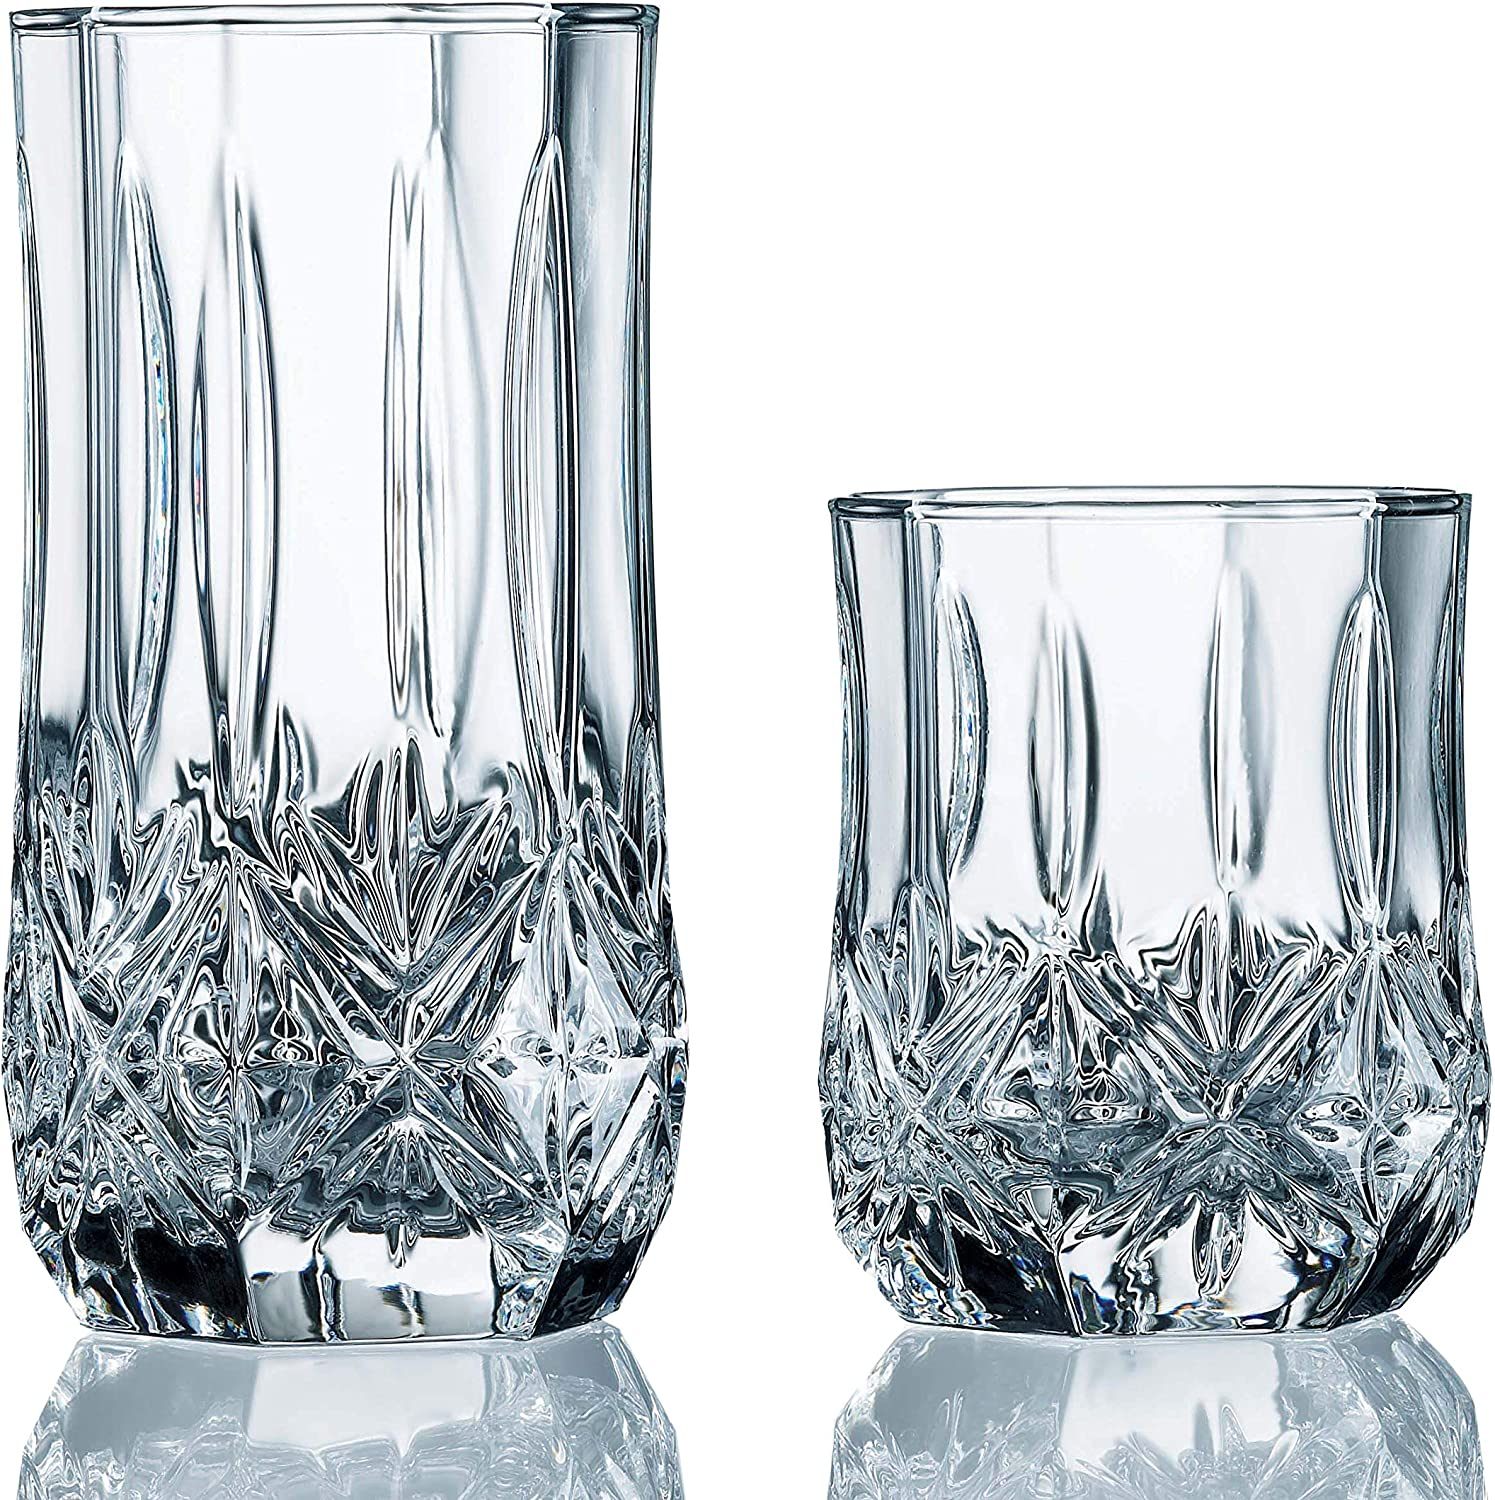 Luminarc Inventory cleanup selling sale 16-Piece Brighton Assorted Glass Tumbler Clear Set Time sale